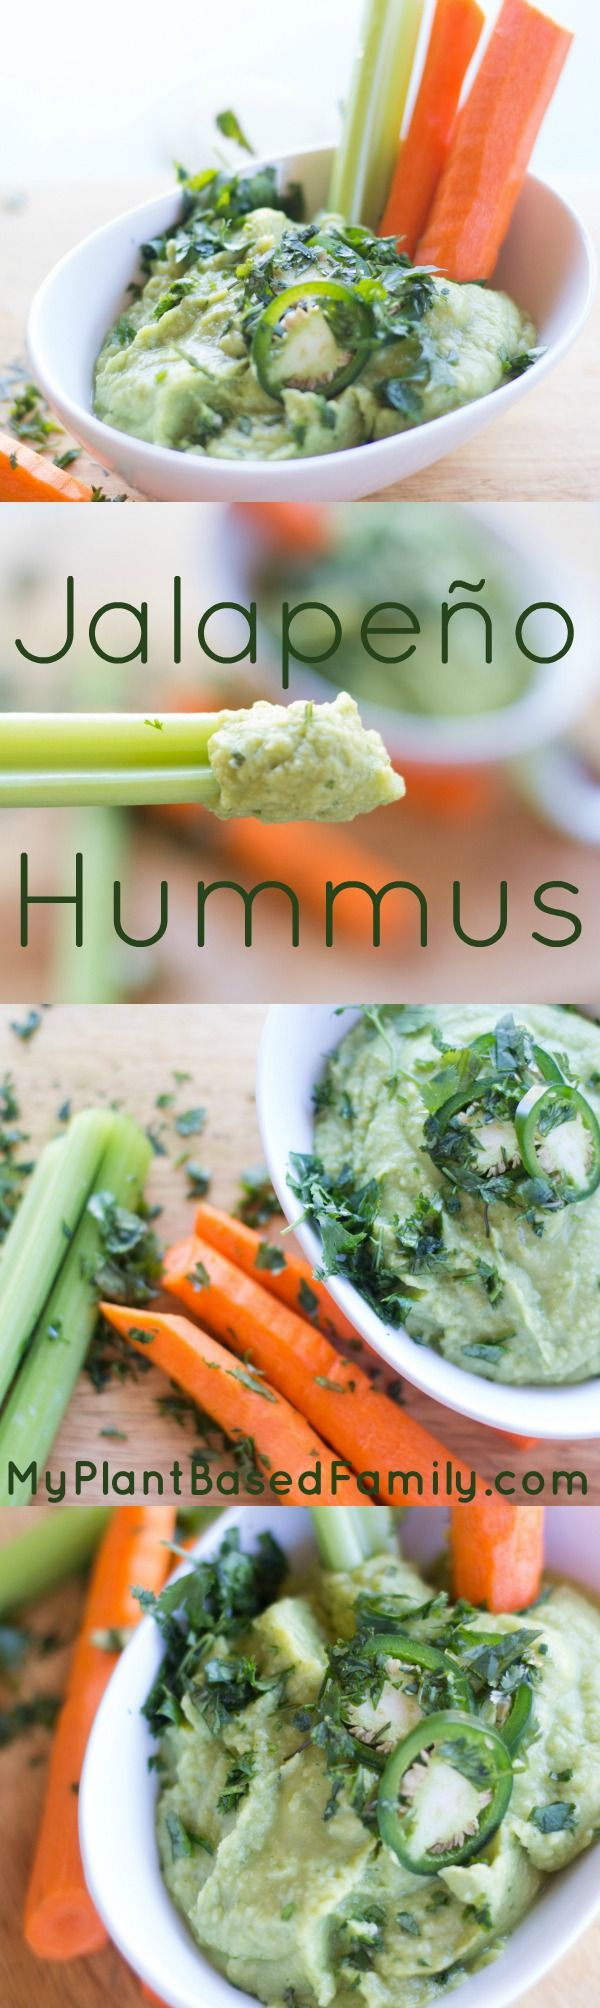 Jalapeno Hummus is gluten-free, plant-based (vegan, dairy-free) and also oil-free.  This is perfect to make for a party or as a snack.